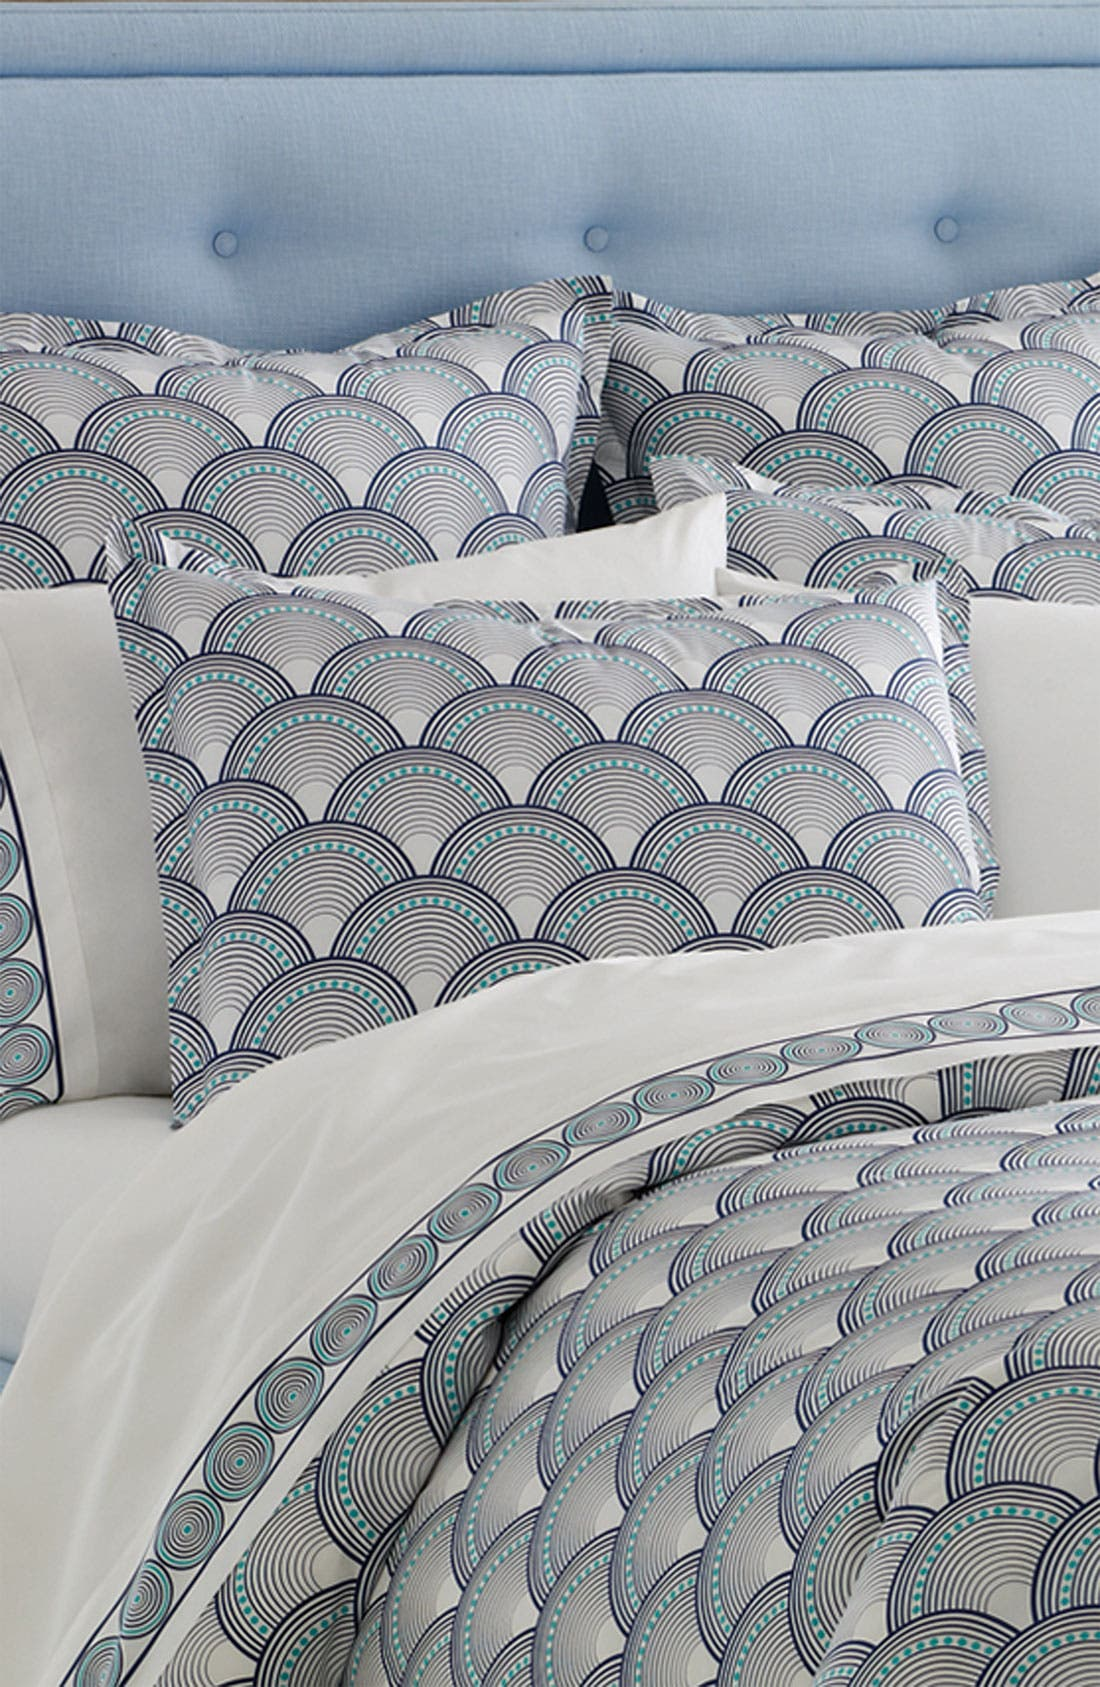 Main Image - Jonathan Adler 'Fish Scales' 400 Thread Count Duvet Cover